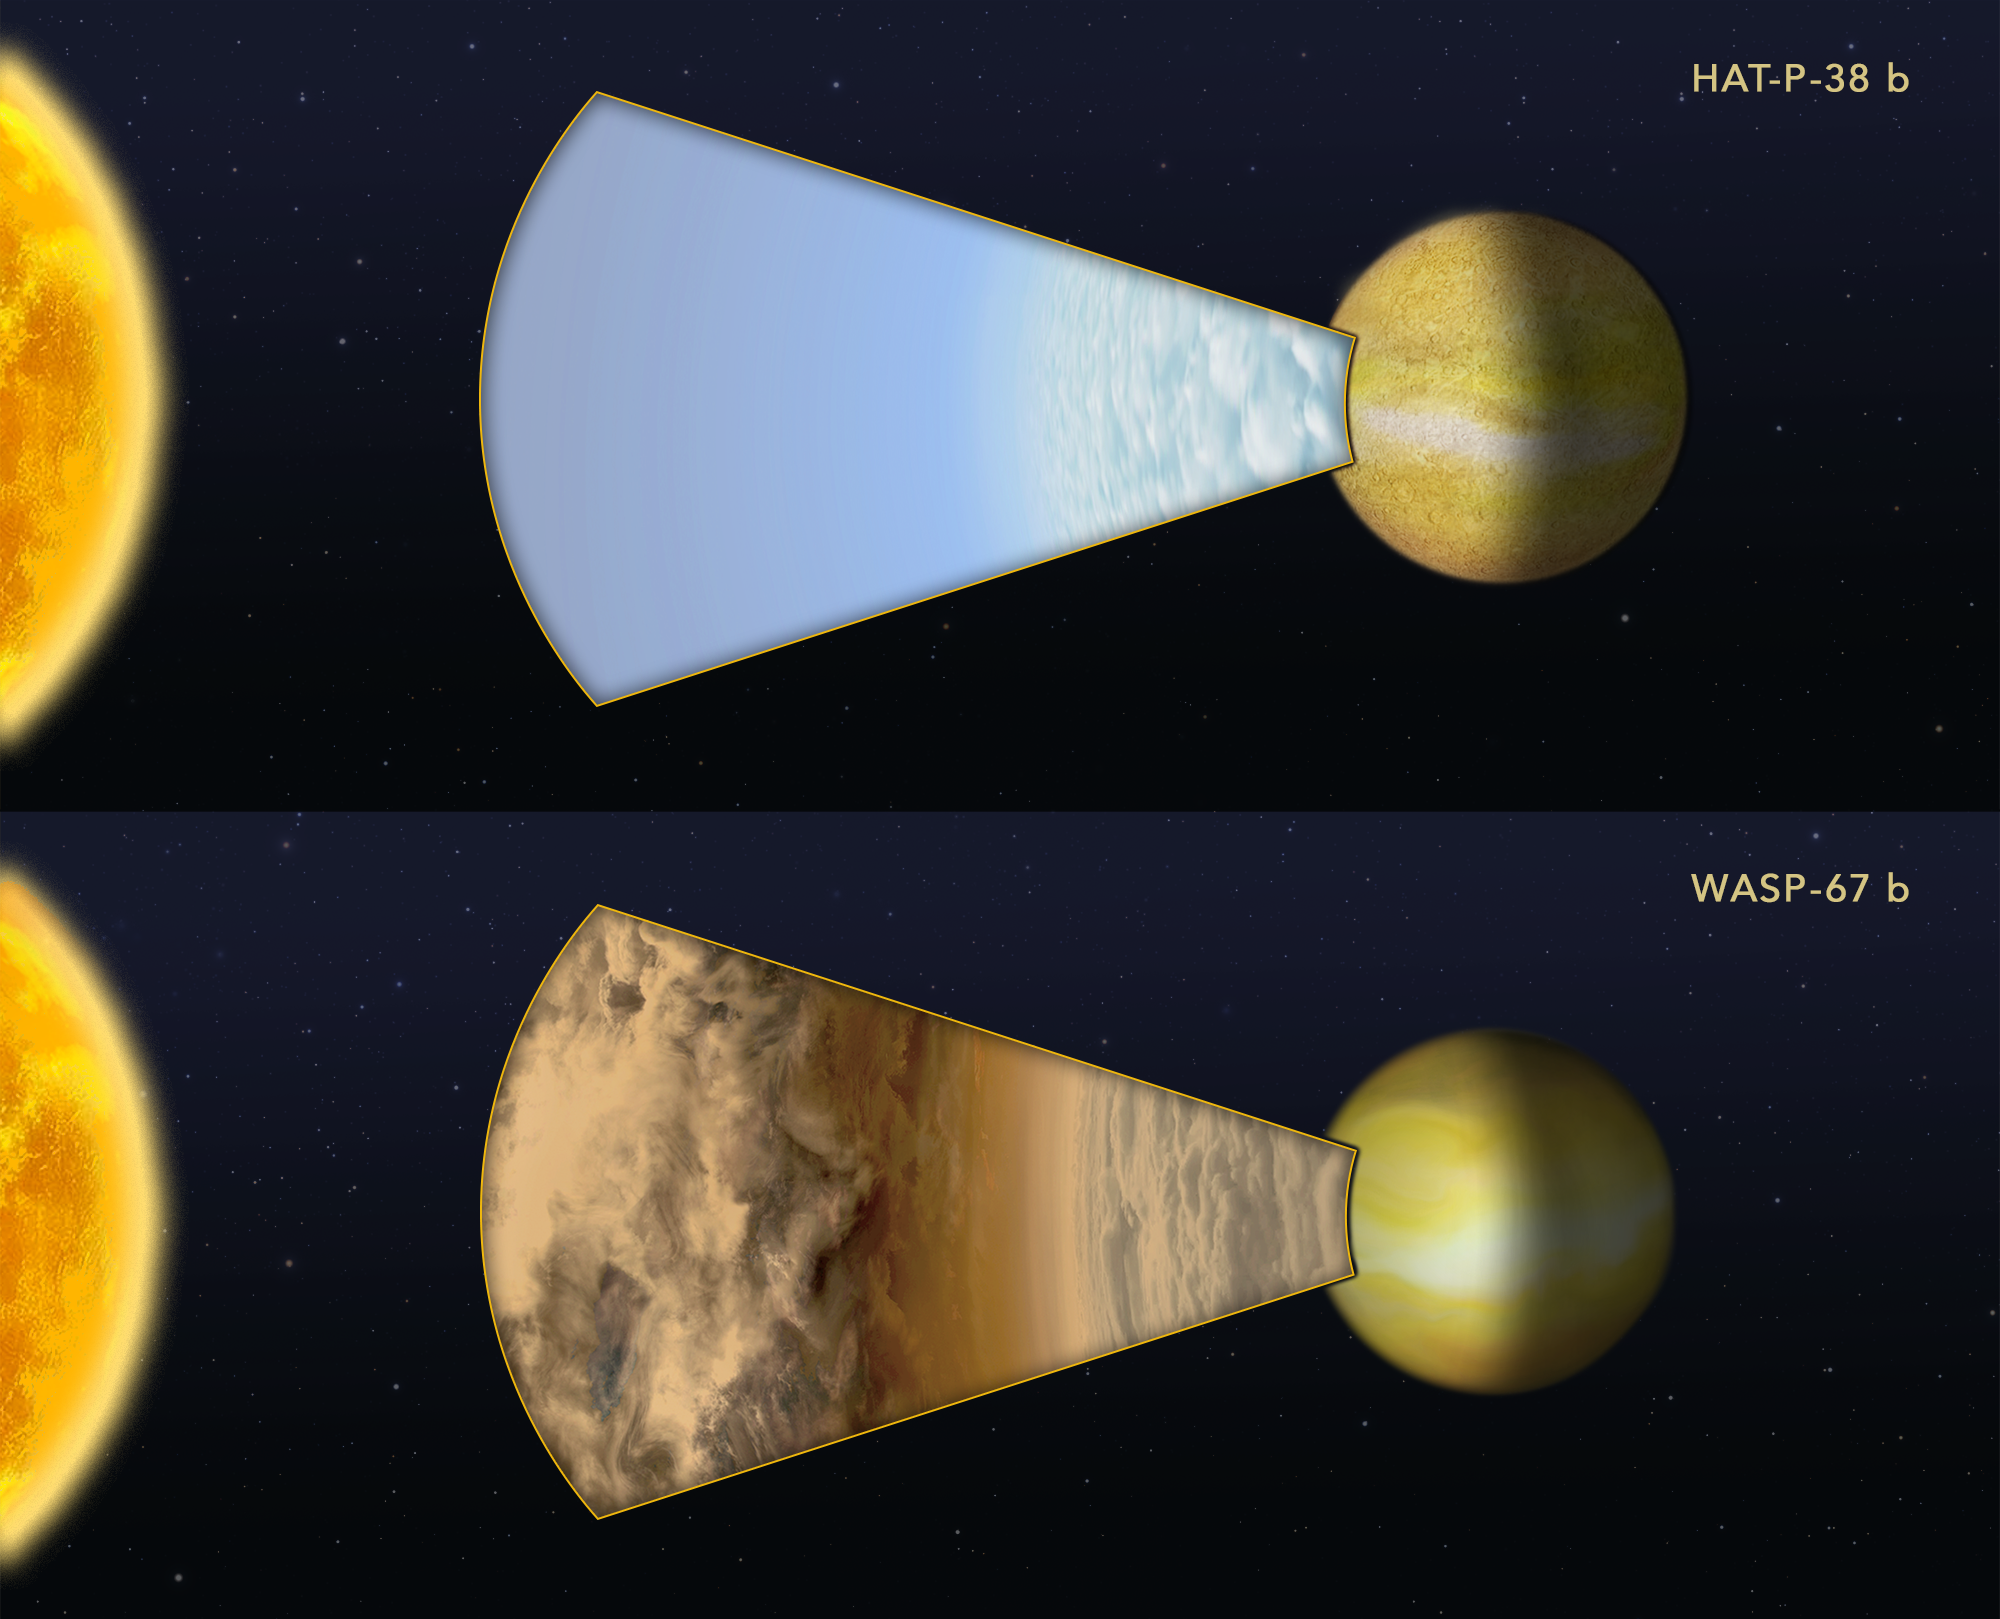 A Take of two Exoplanets